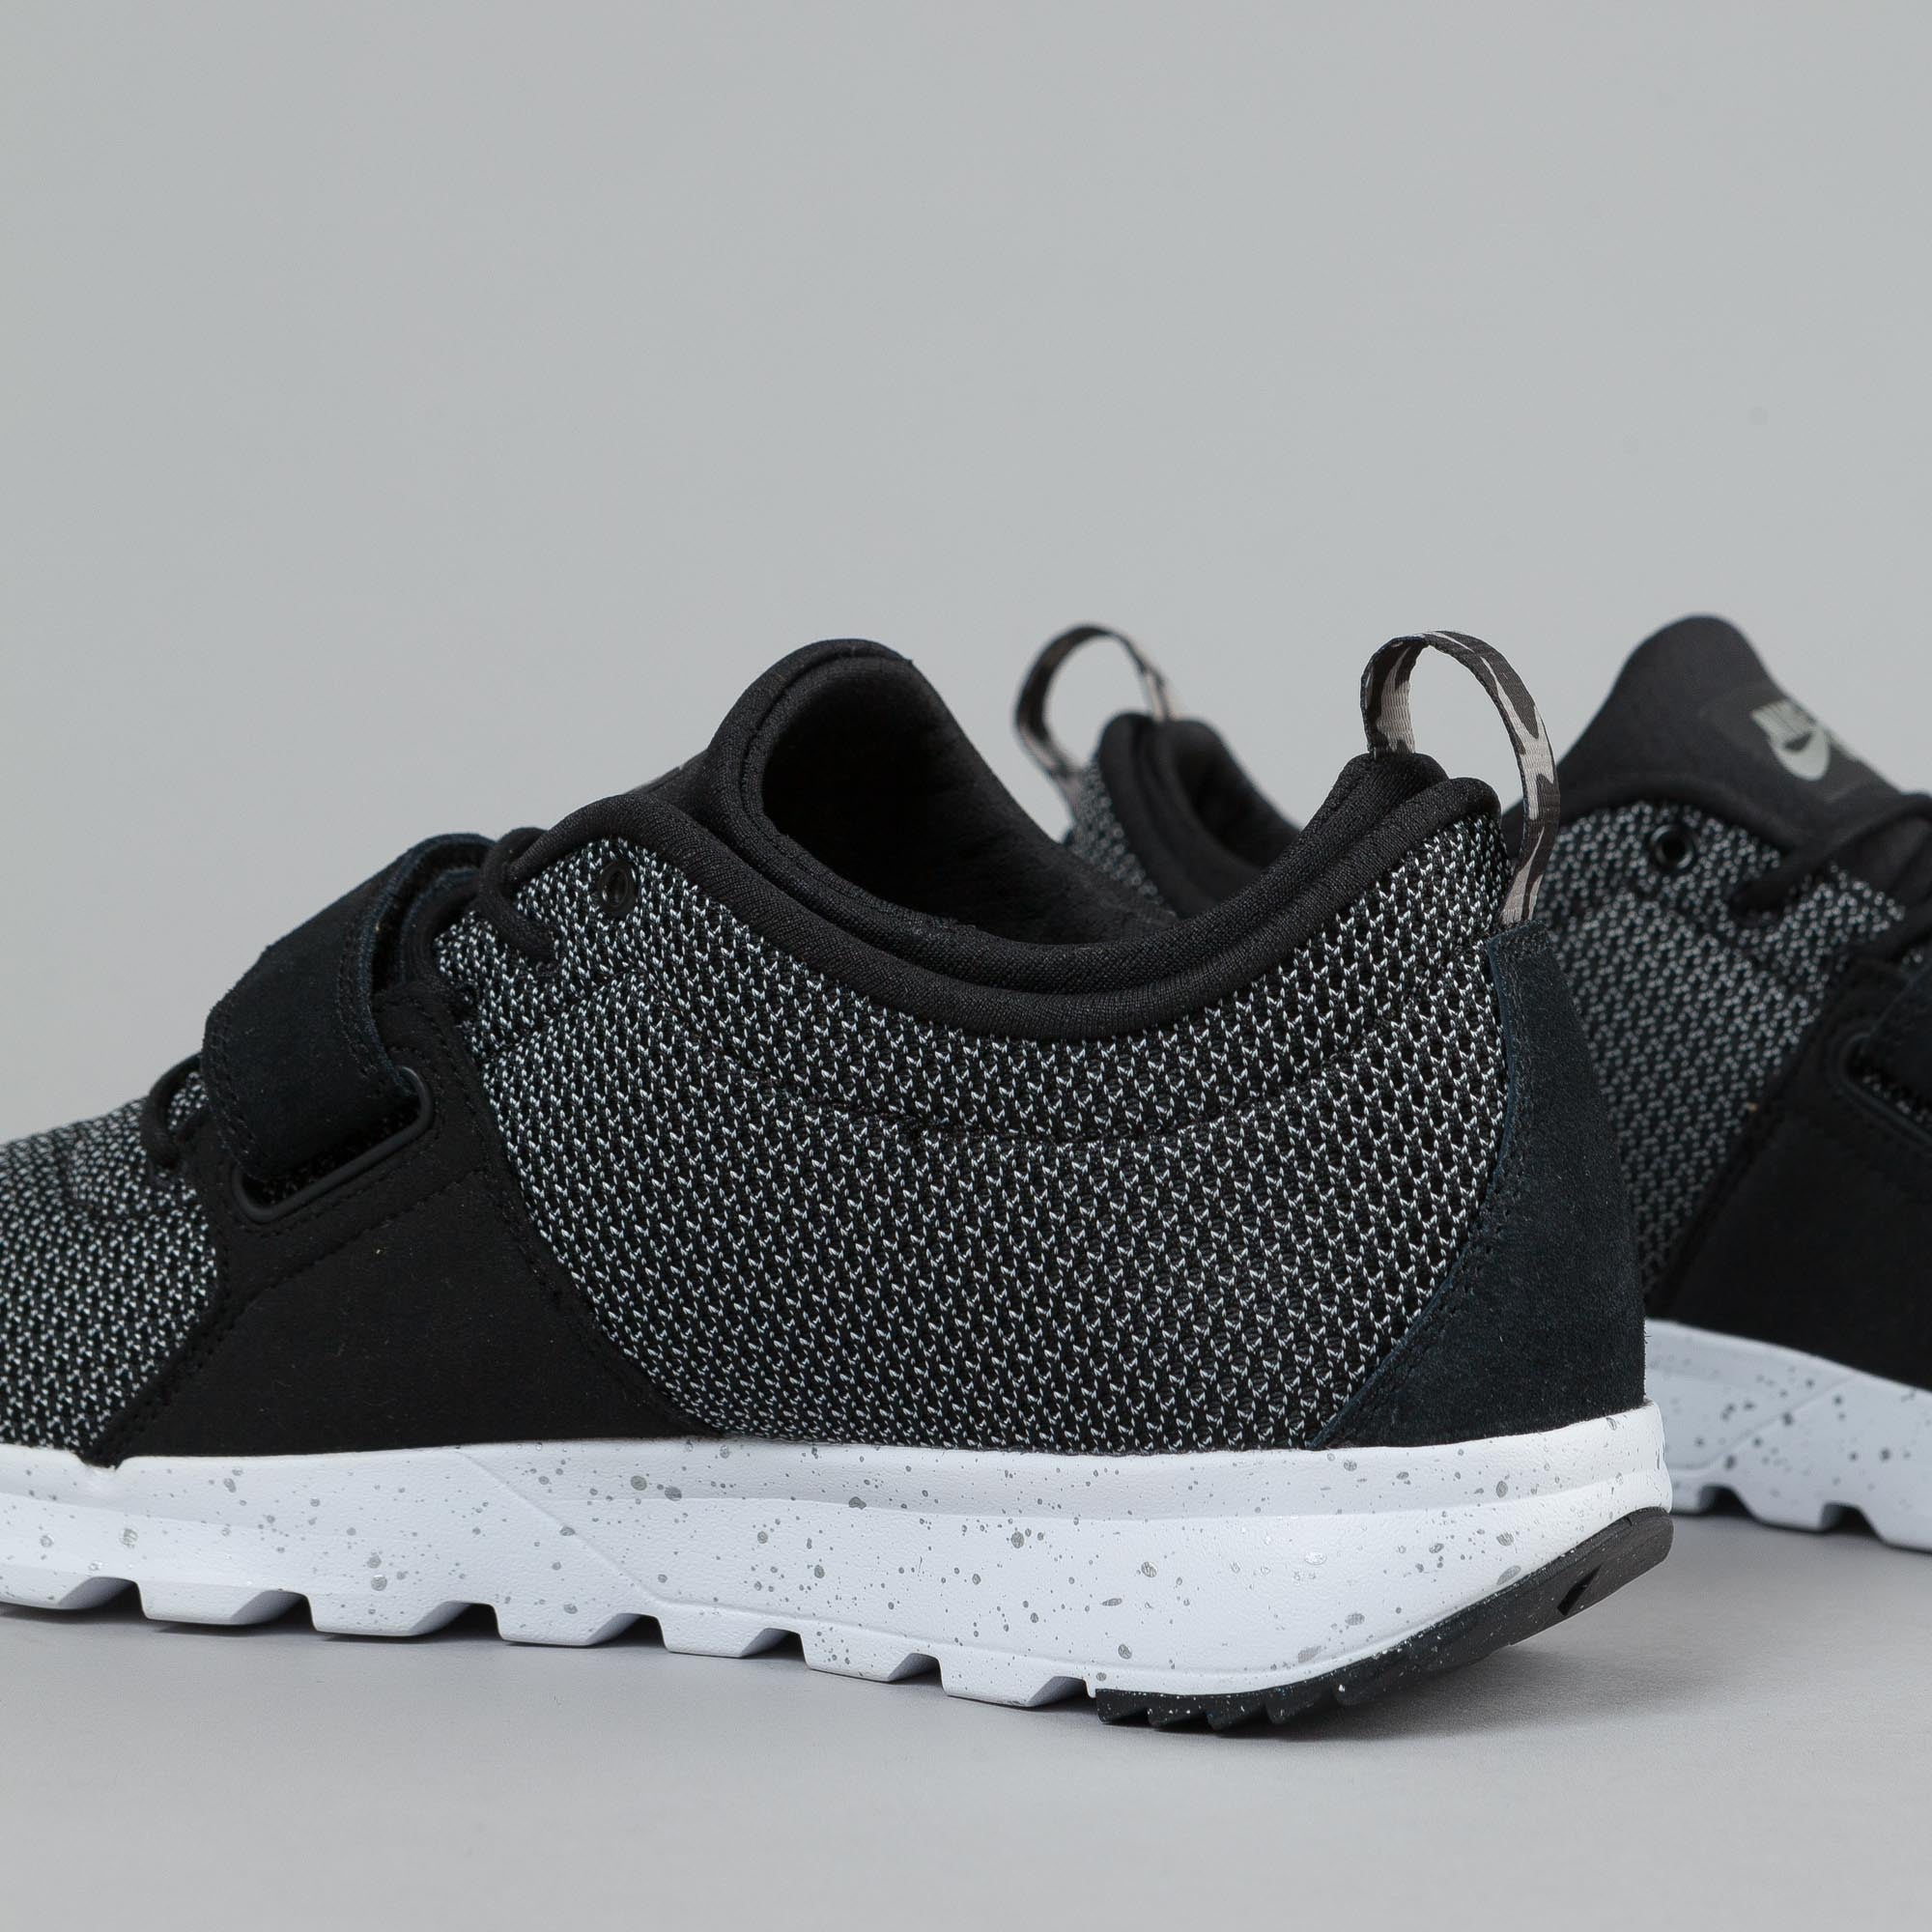 Nike SB Trainerendor Black/ Metallic Silver - White